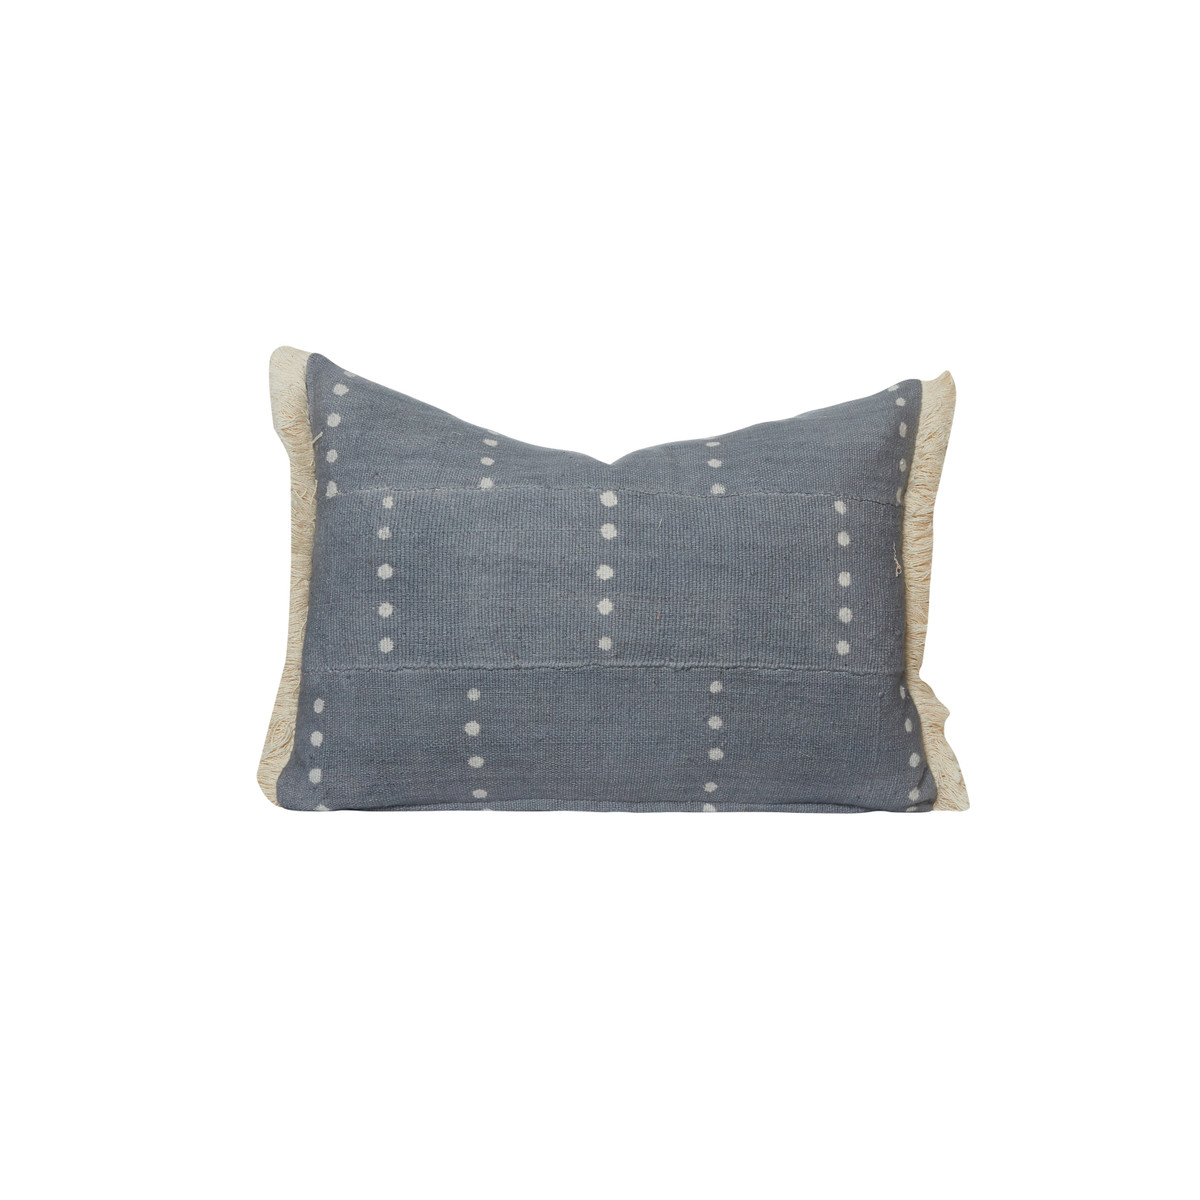 Dottie Gray Lumbar Mud Cloth PIllow - Front